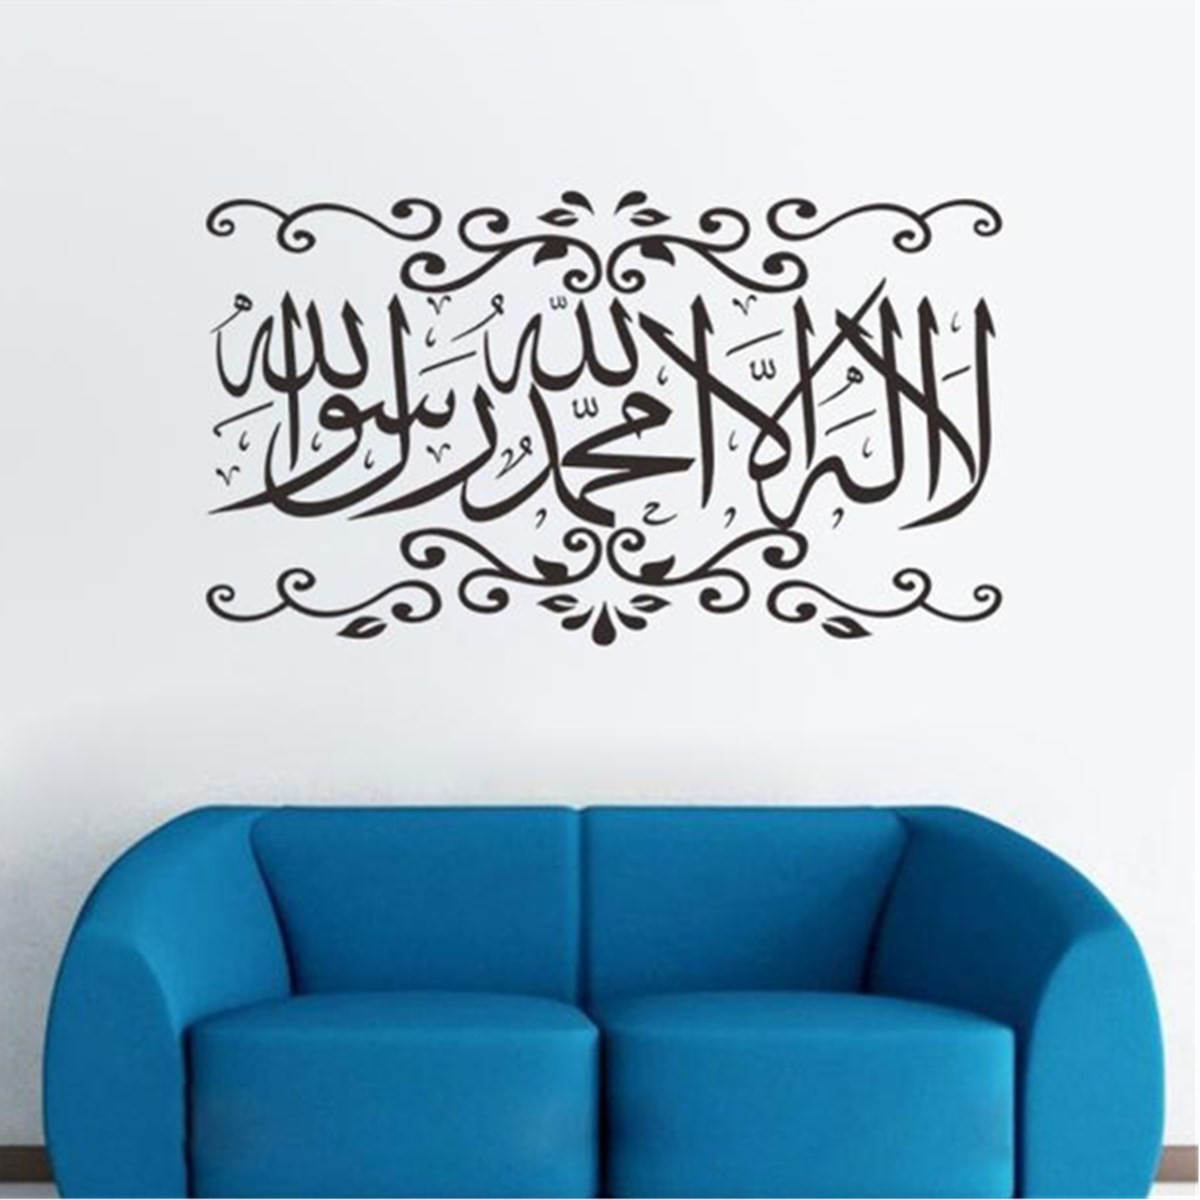 Islamic wall sticker home decor muslim mural art allah arabic quotes islamic wall sticker home decor muslim mural art allah arabic quotes wedding decoration family bless party supply wall art in wall stickers from home junglespirit Images